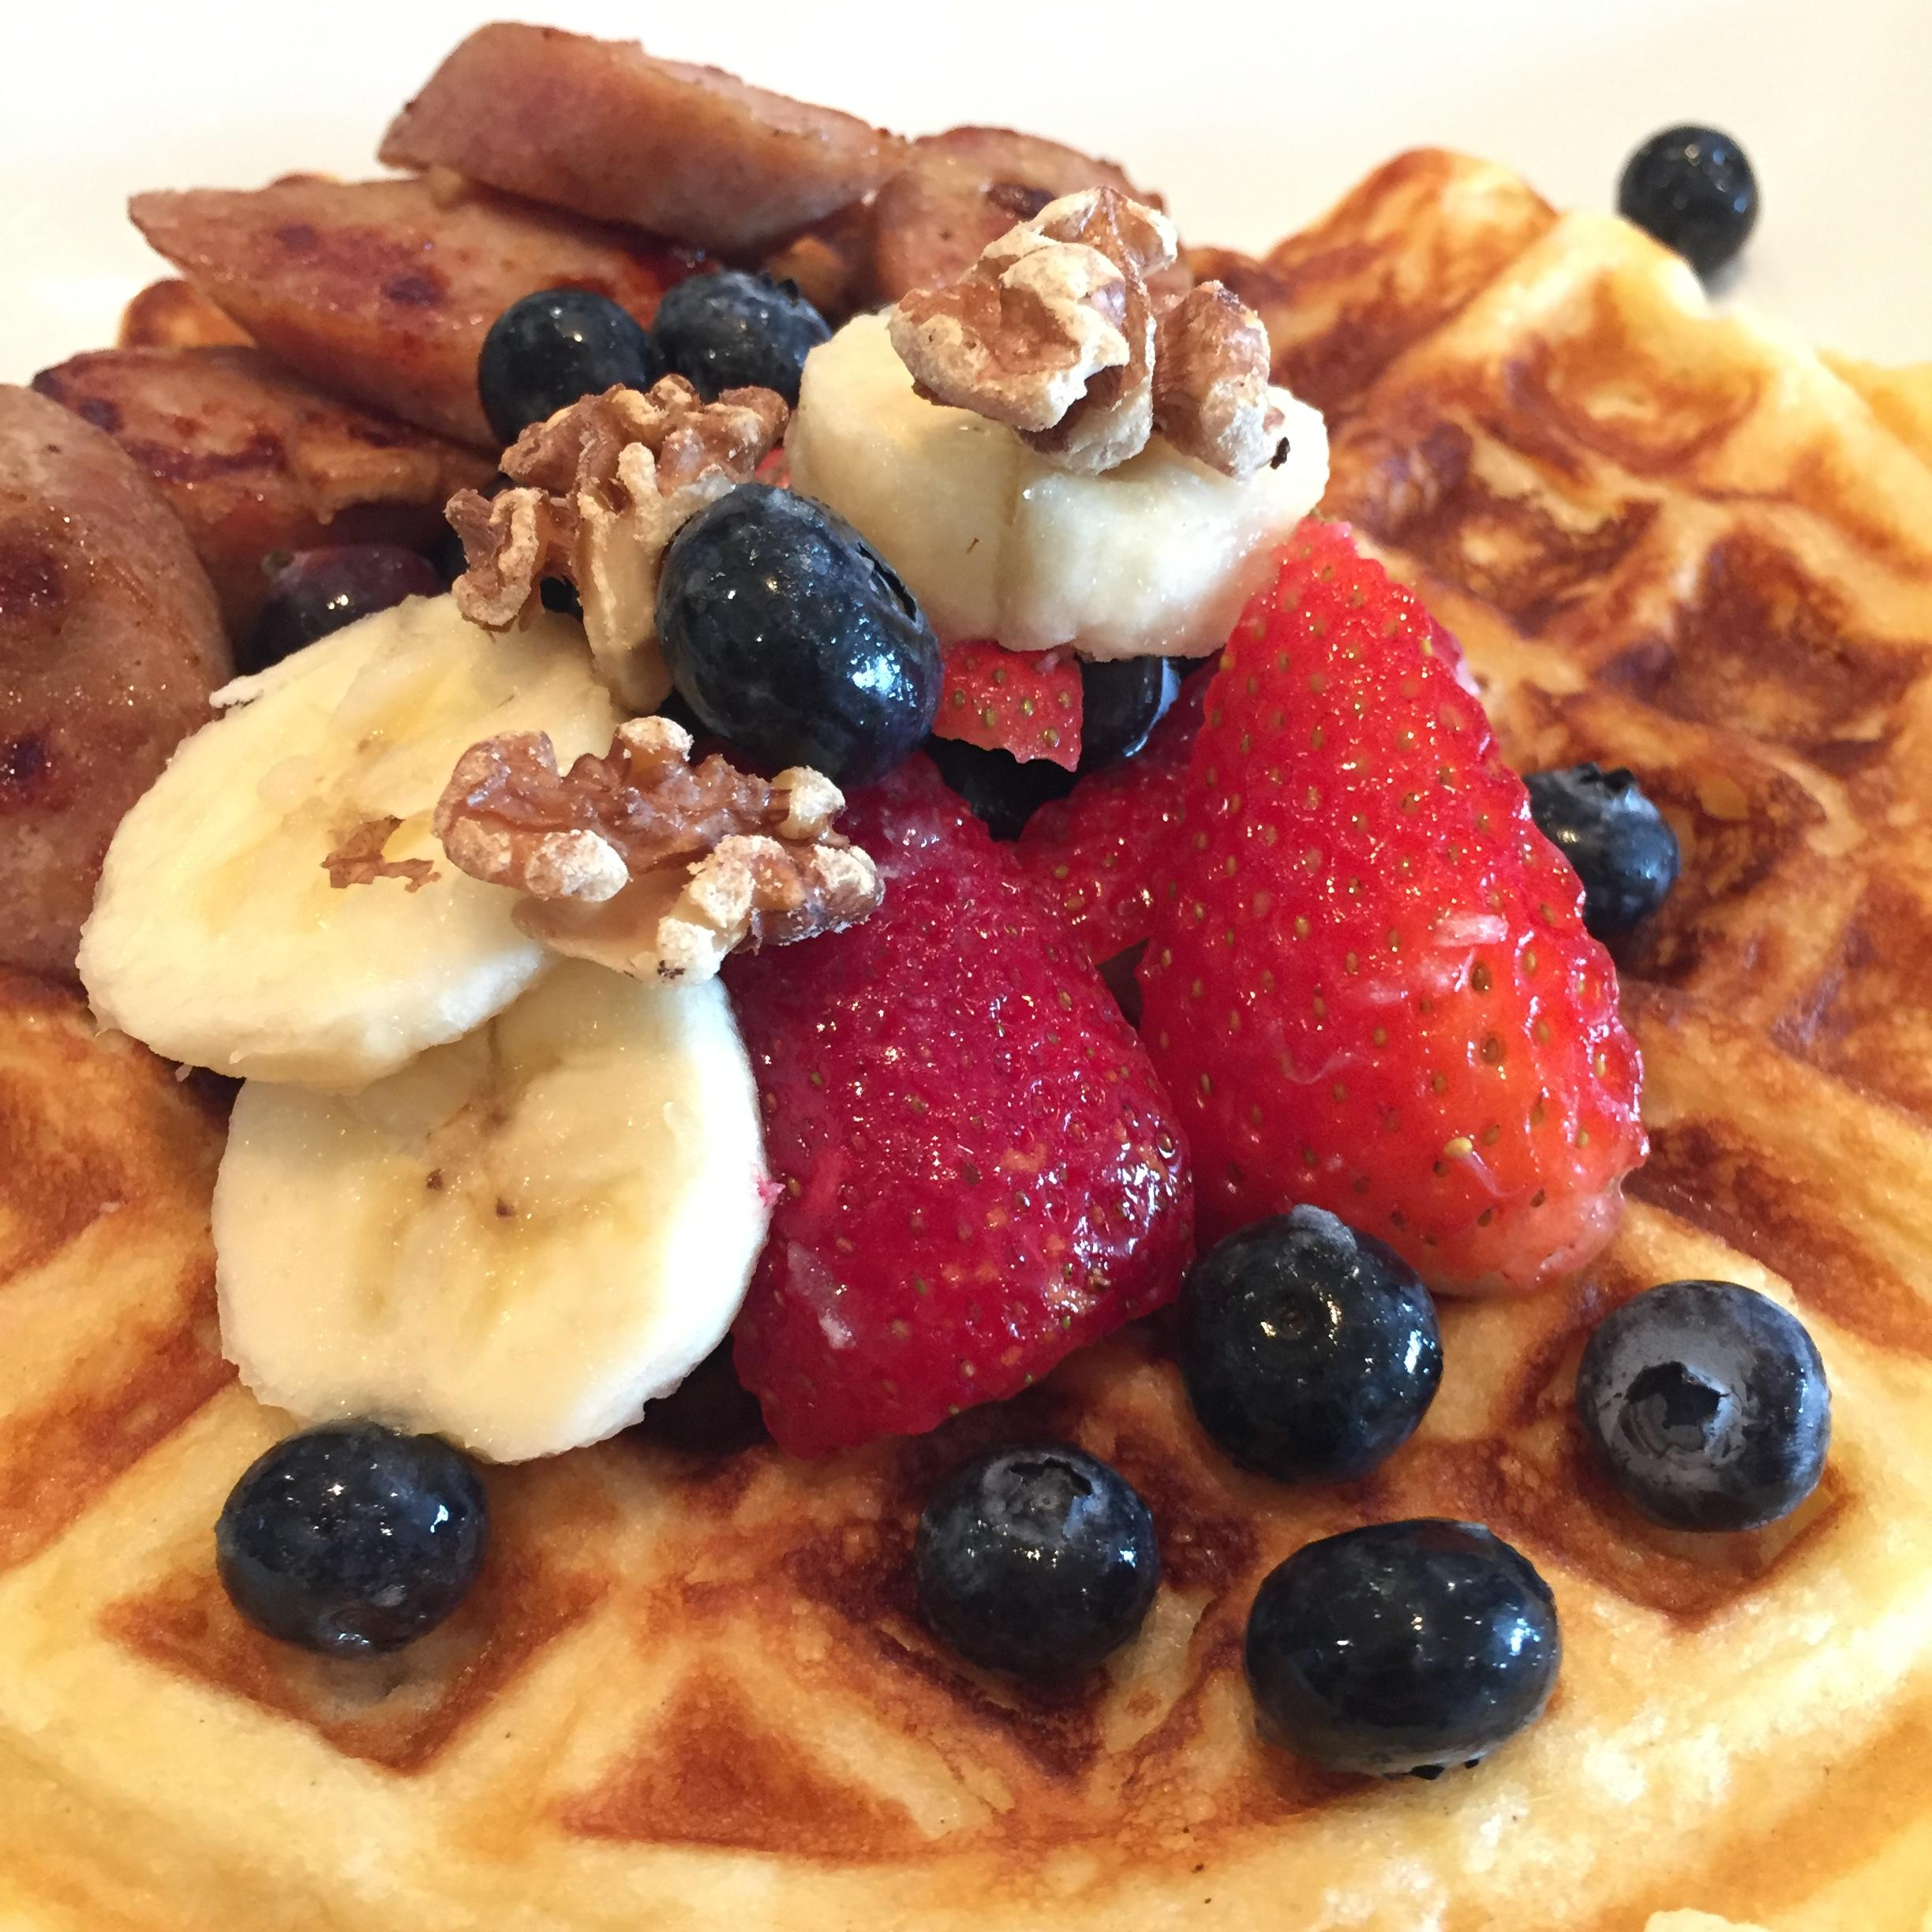 Buttermilk waffles, topped with berries and walnuts, with a side of chicken-apple sausage